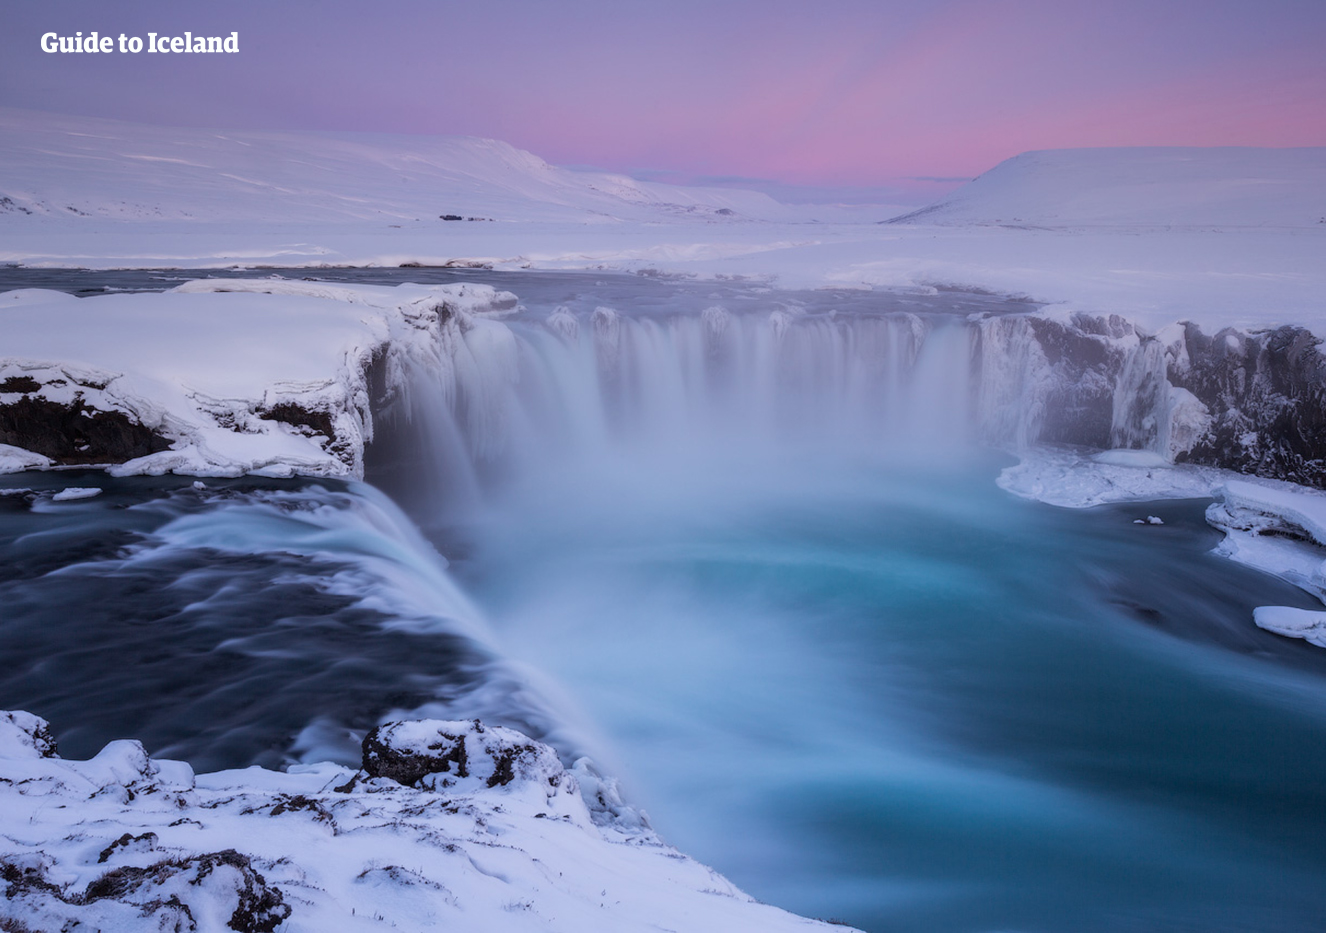 The stunning Goðafoss waterfall blanketed with snow.